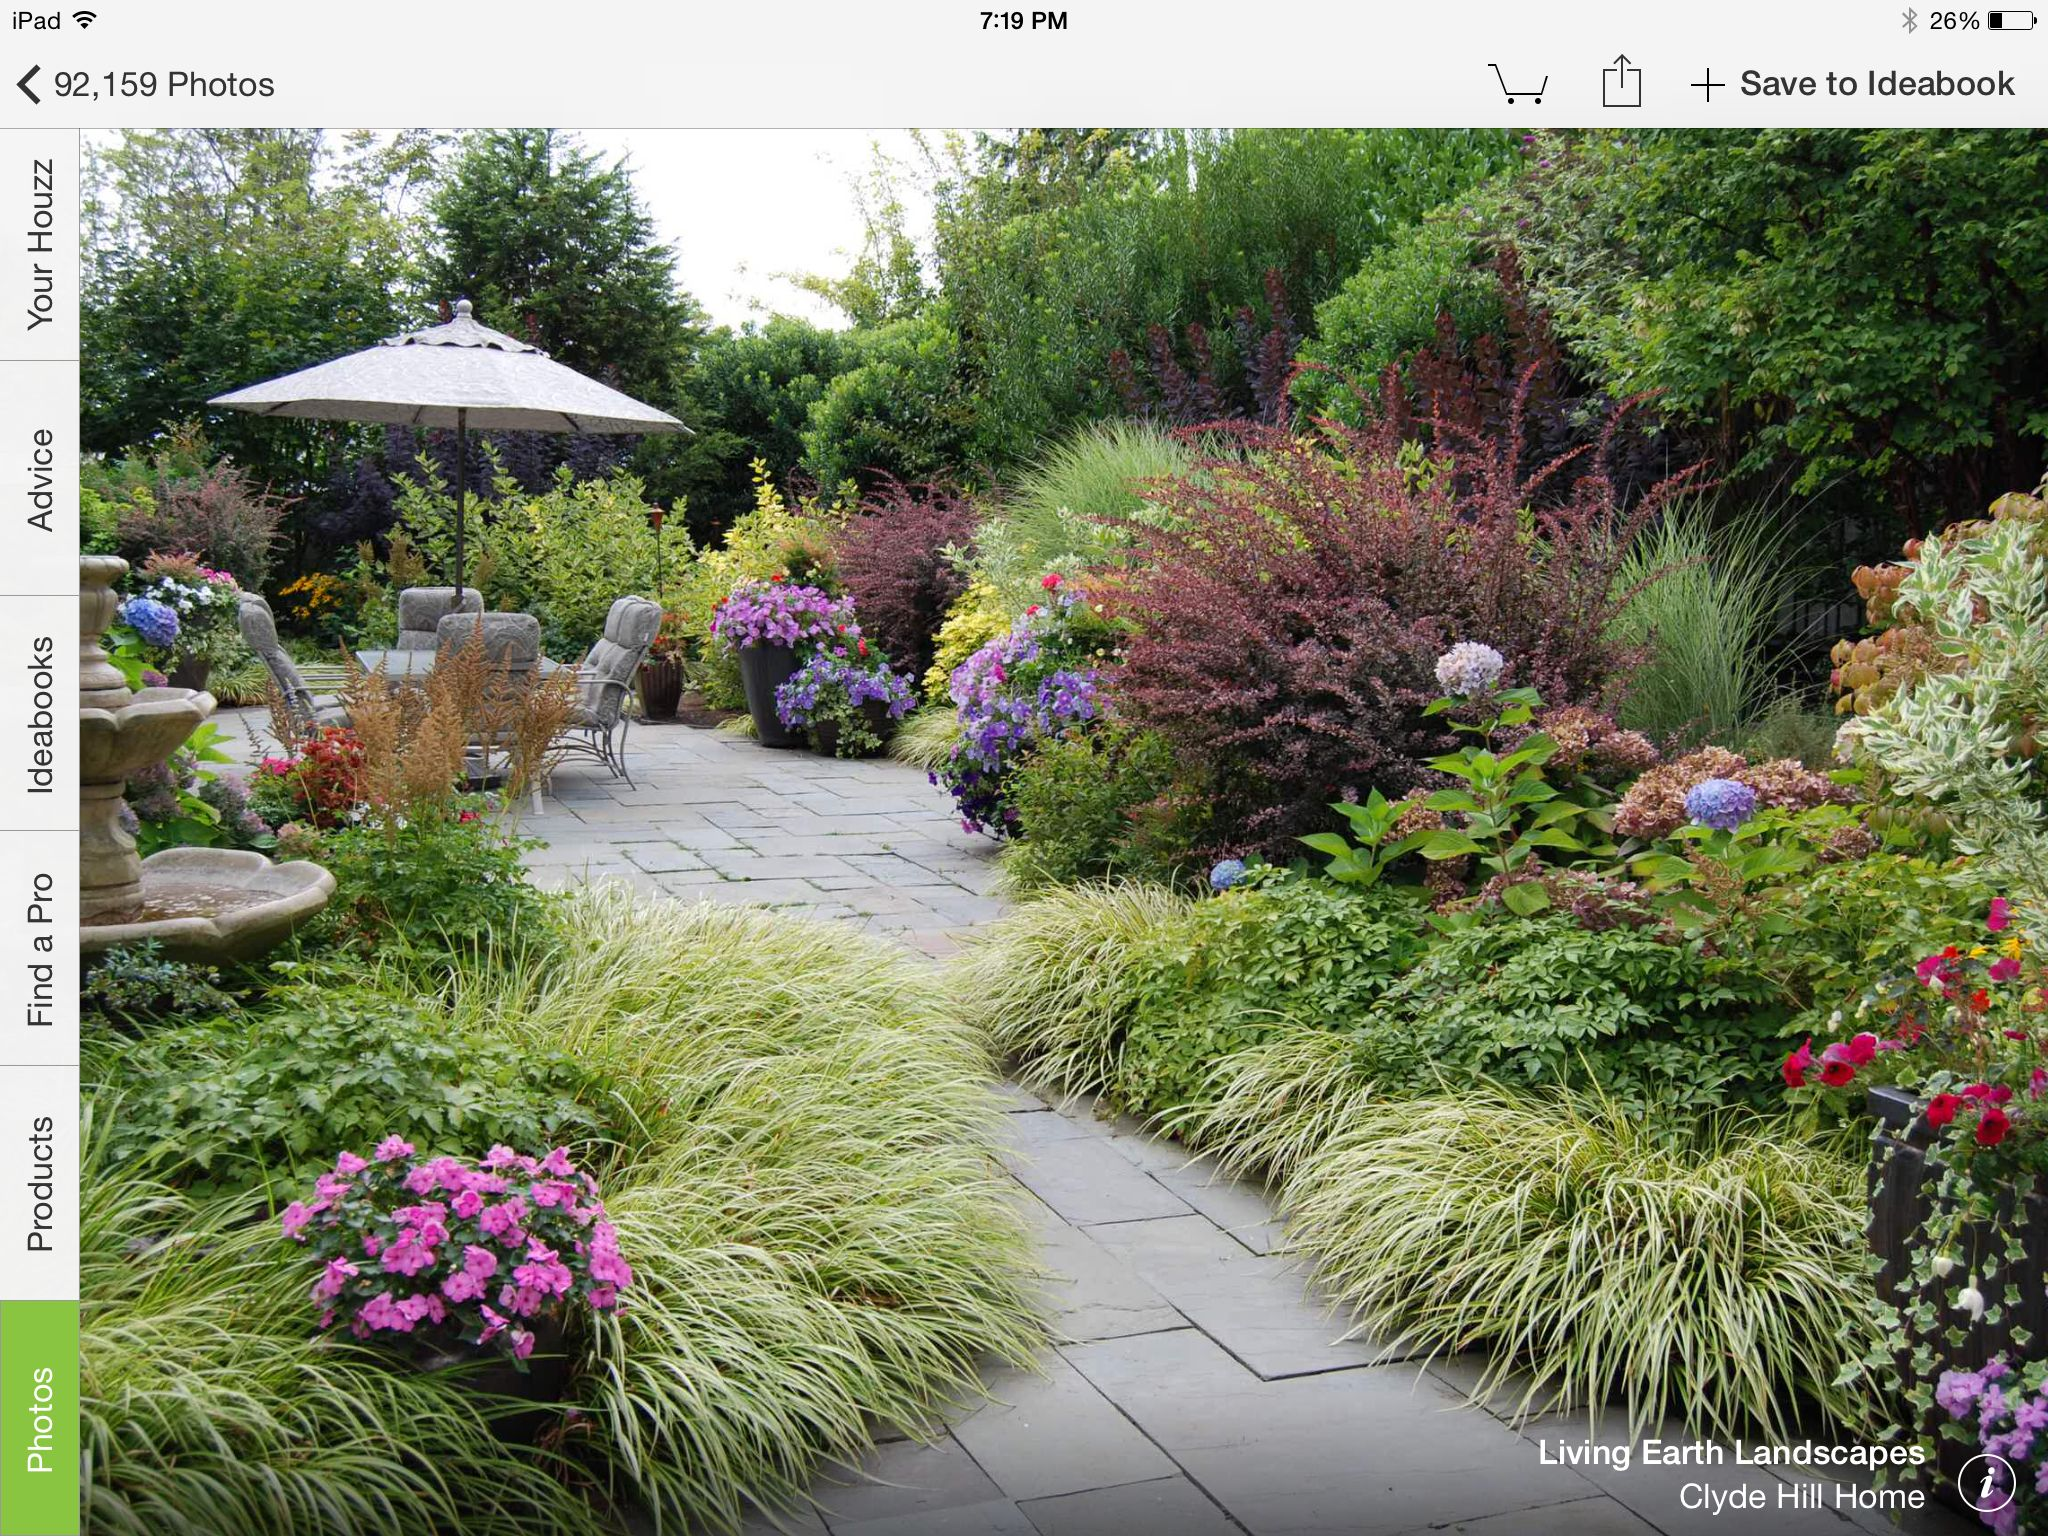 Landscaping W/ Barberry Bushes (Clyde Hill Home). Like These W/ Grasses,  Joe Pye Weed, Petunias :)